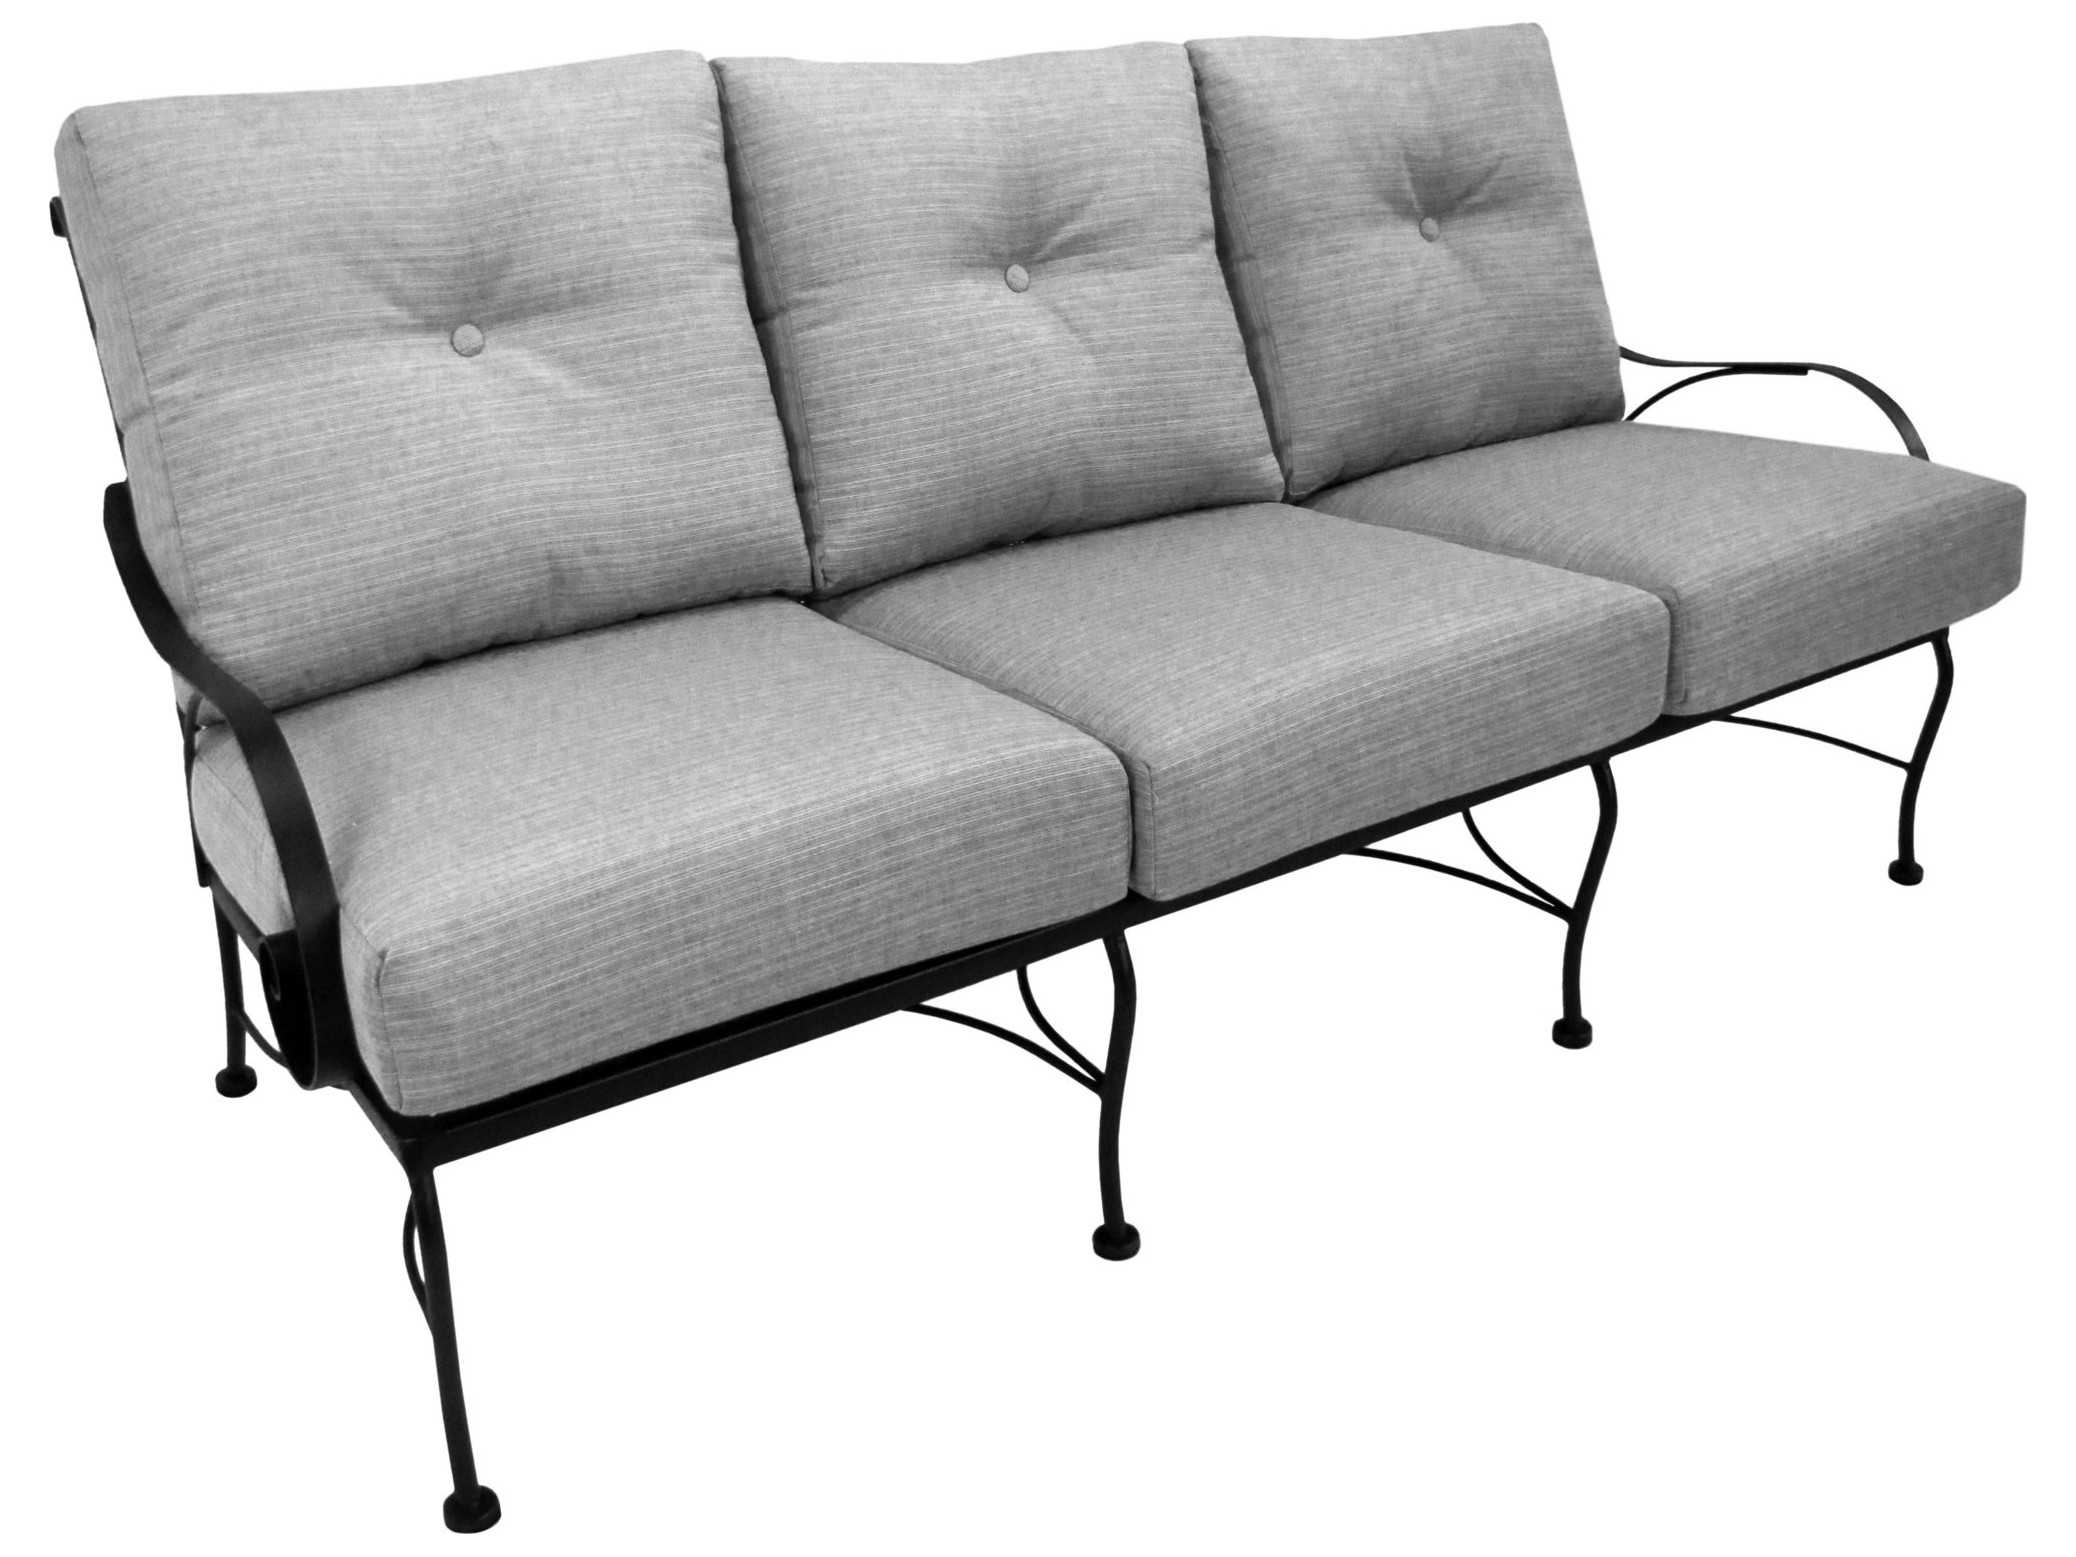 Meadowcraft Monticello Wrought Iron Deep Seating Sofa